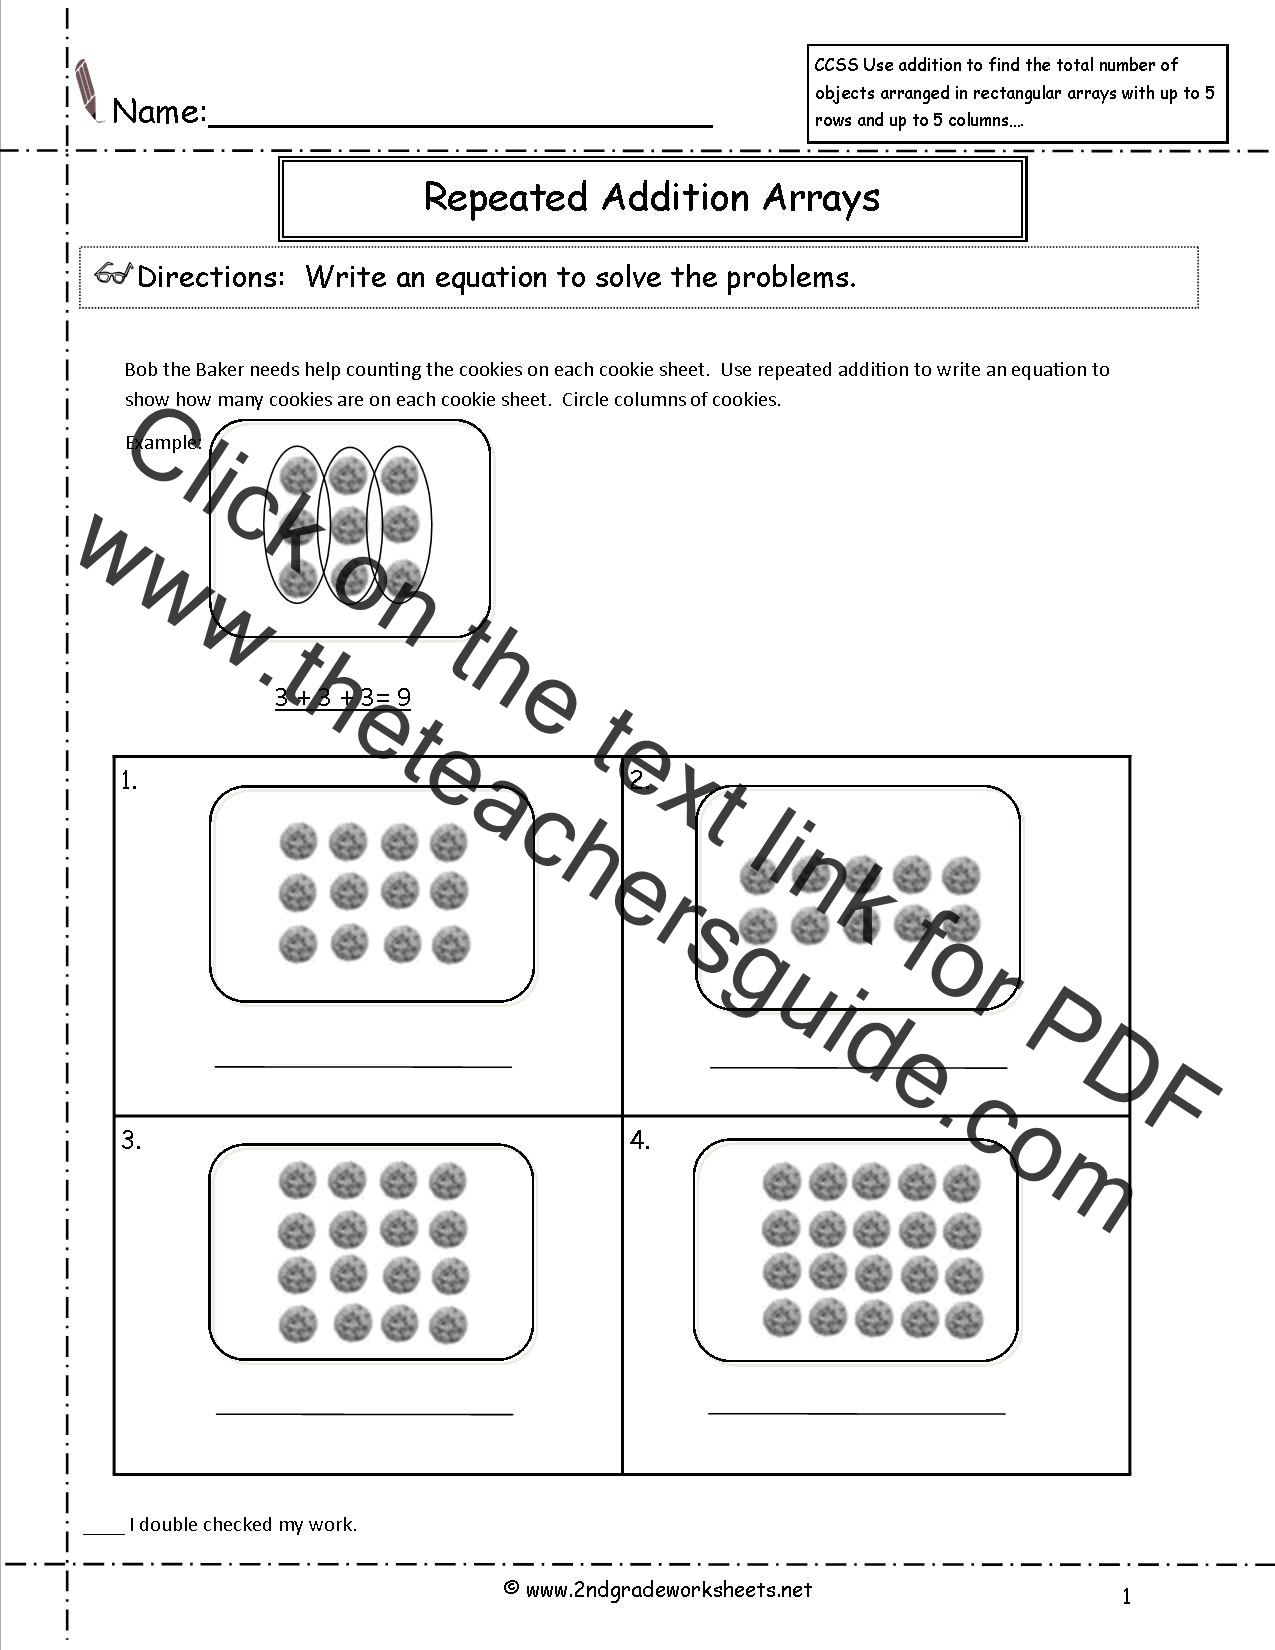 Worksheets Equation Building Worksheets ccss 2 oa 4 worksheets repeated addition arrays